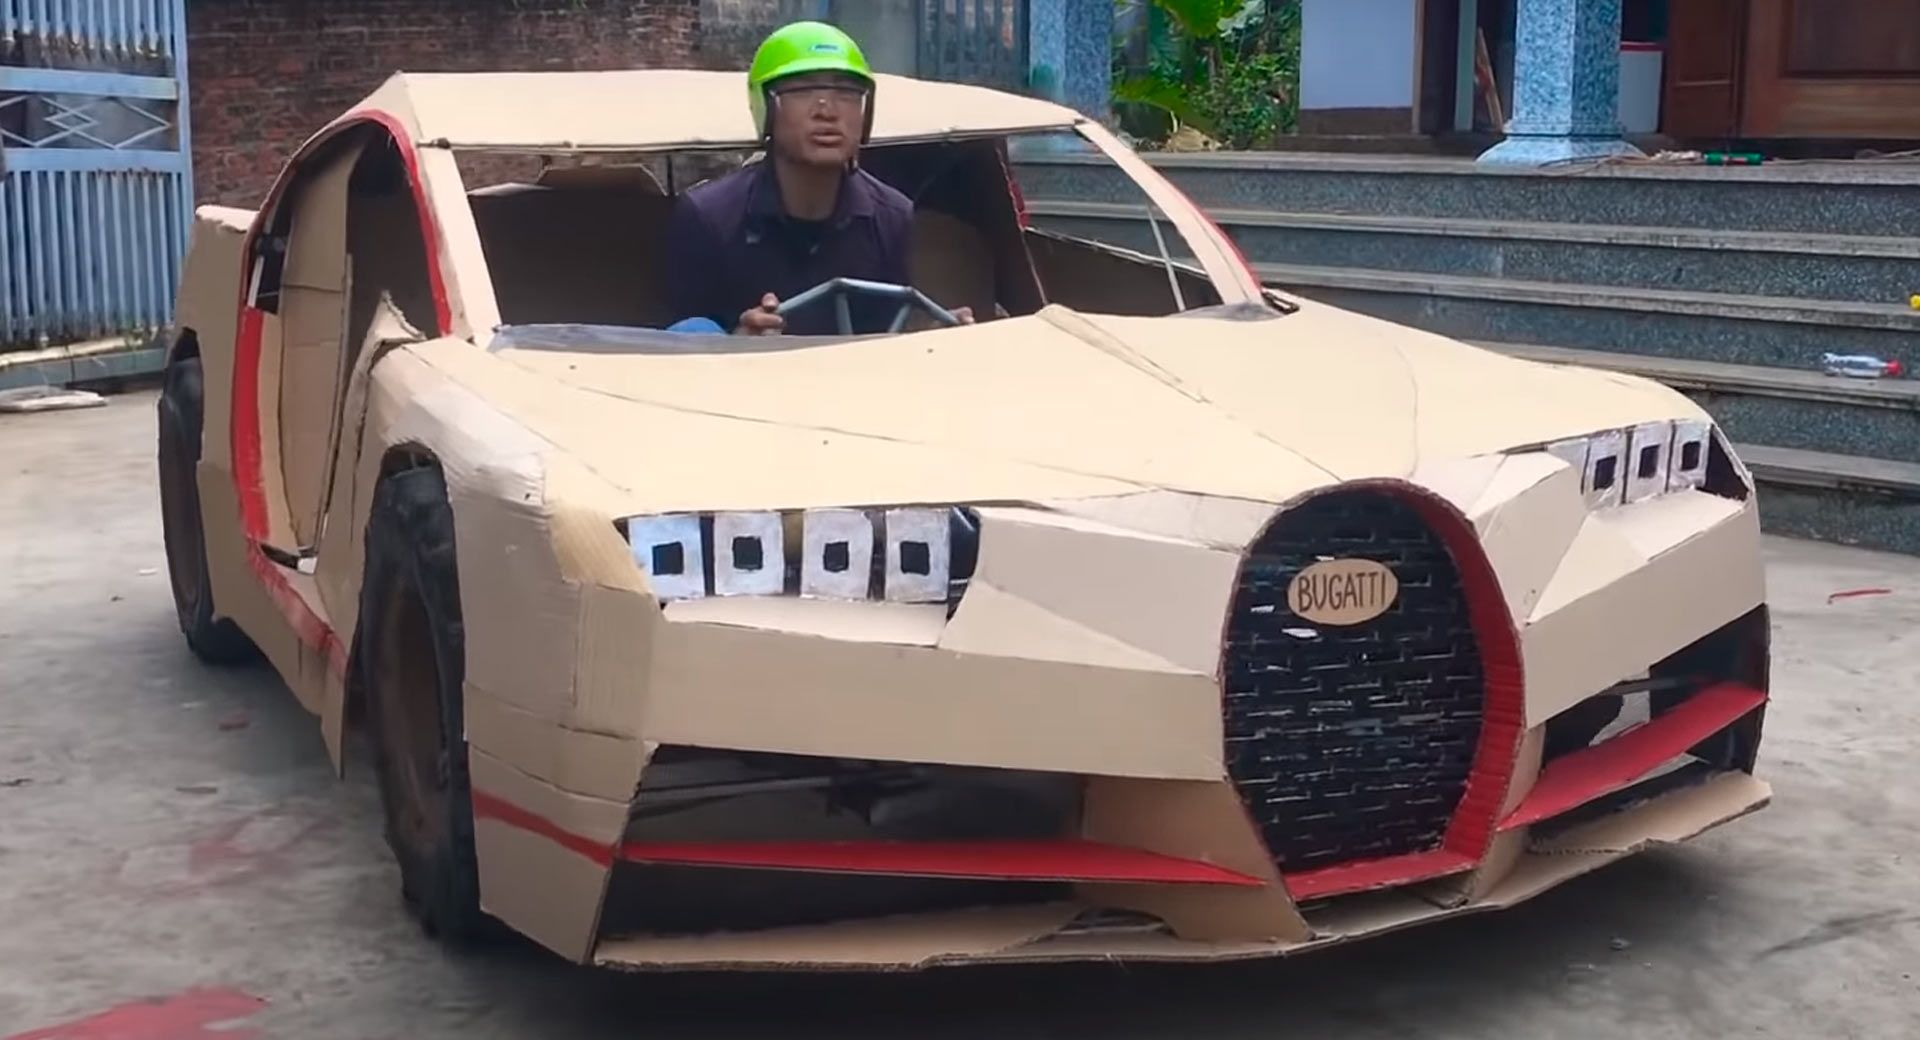 These Guys Build $100 Driveable And Pedalable Supercars Out Of Cardboard | Carscoops